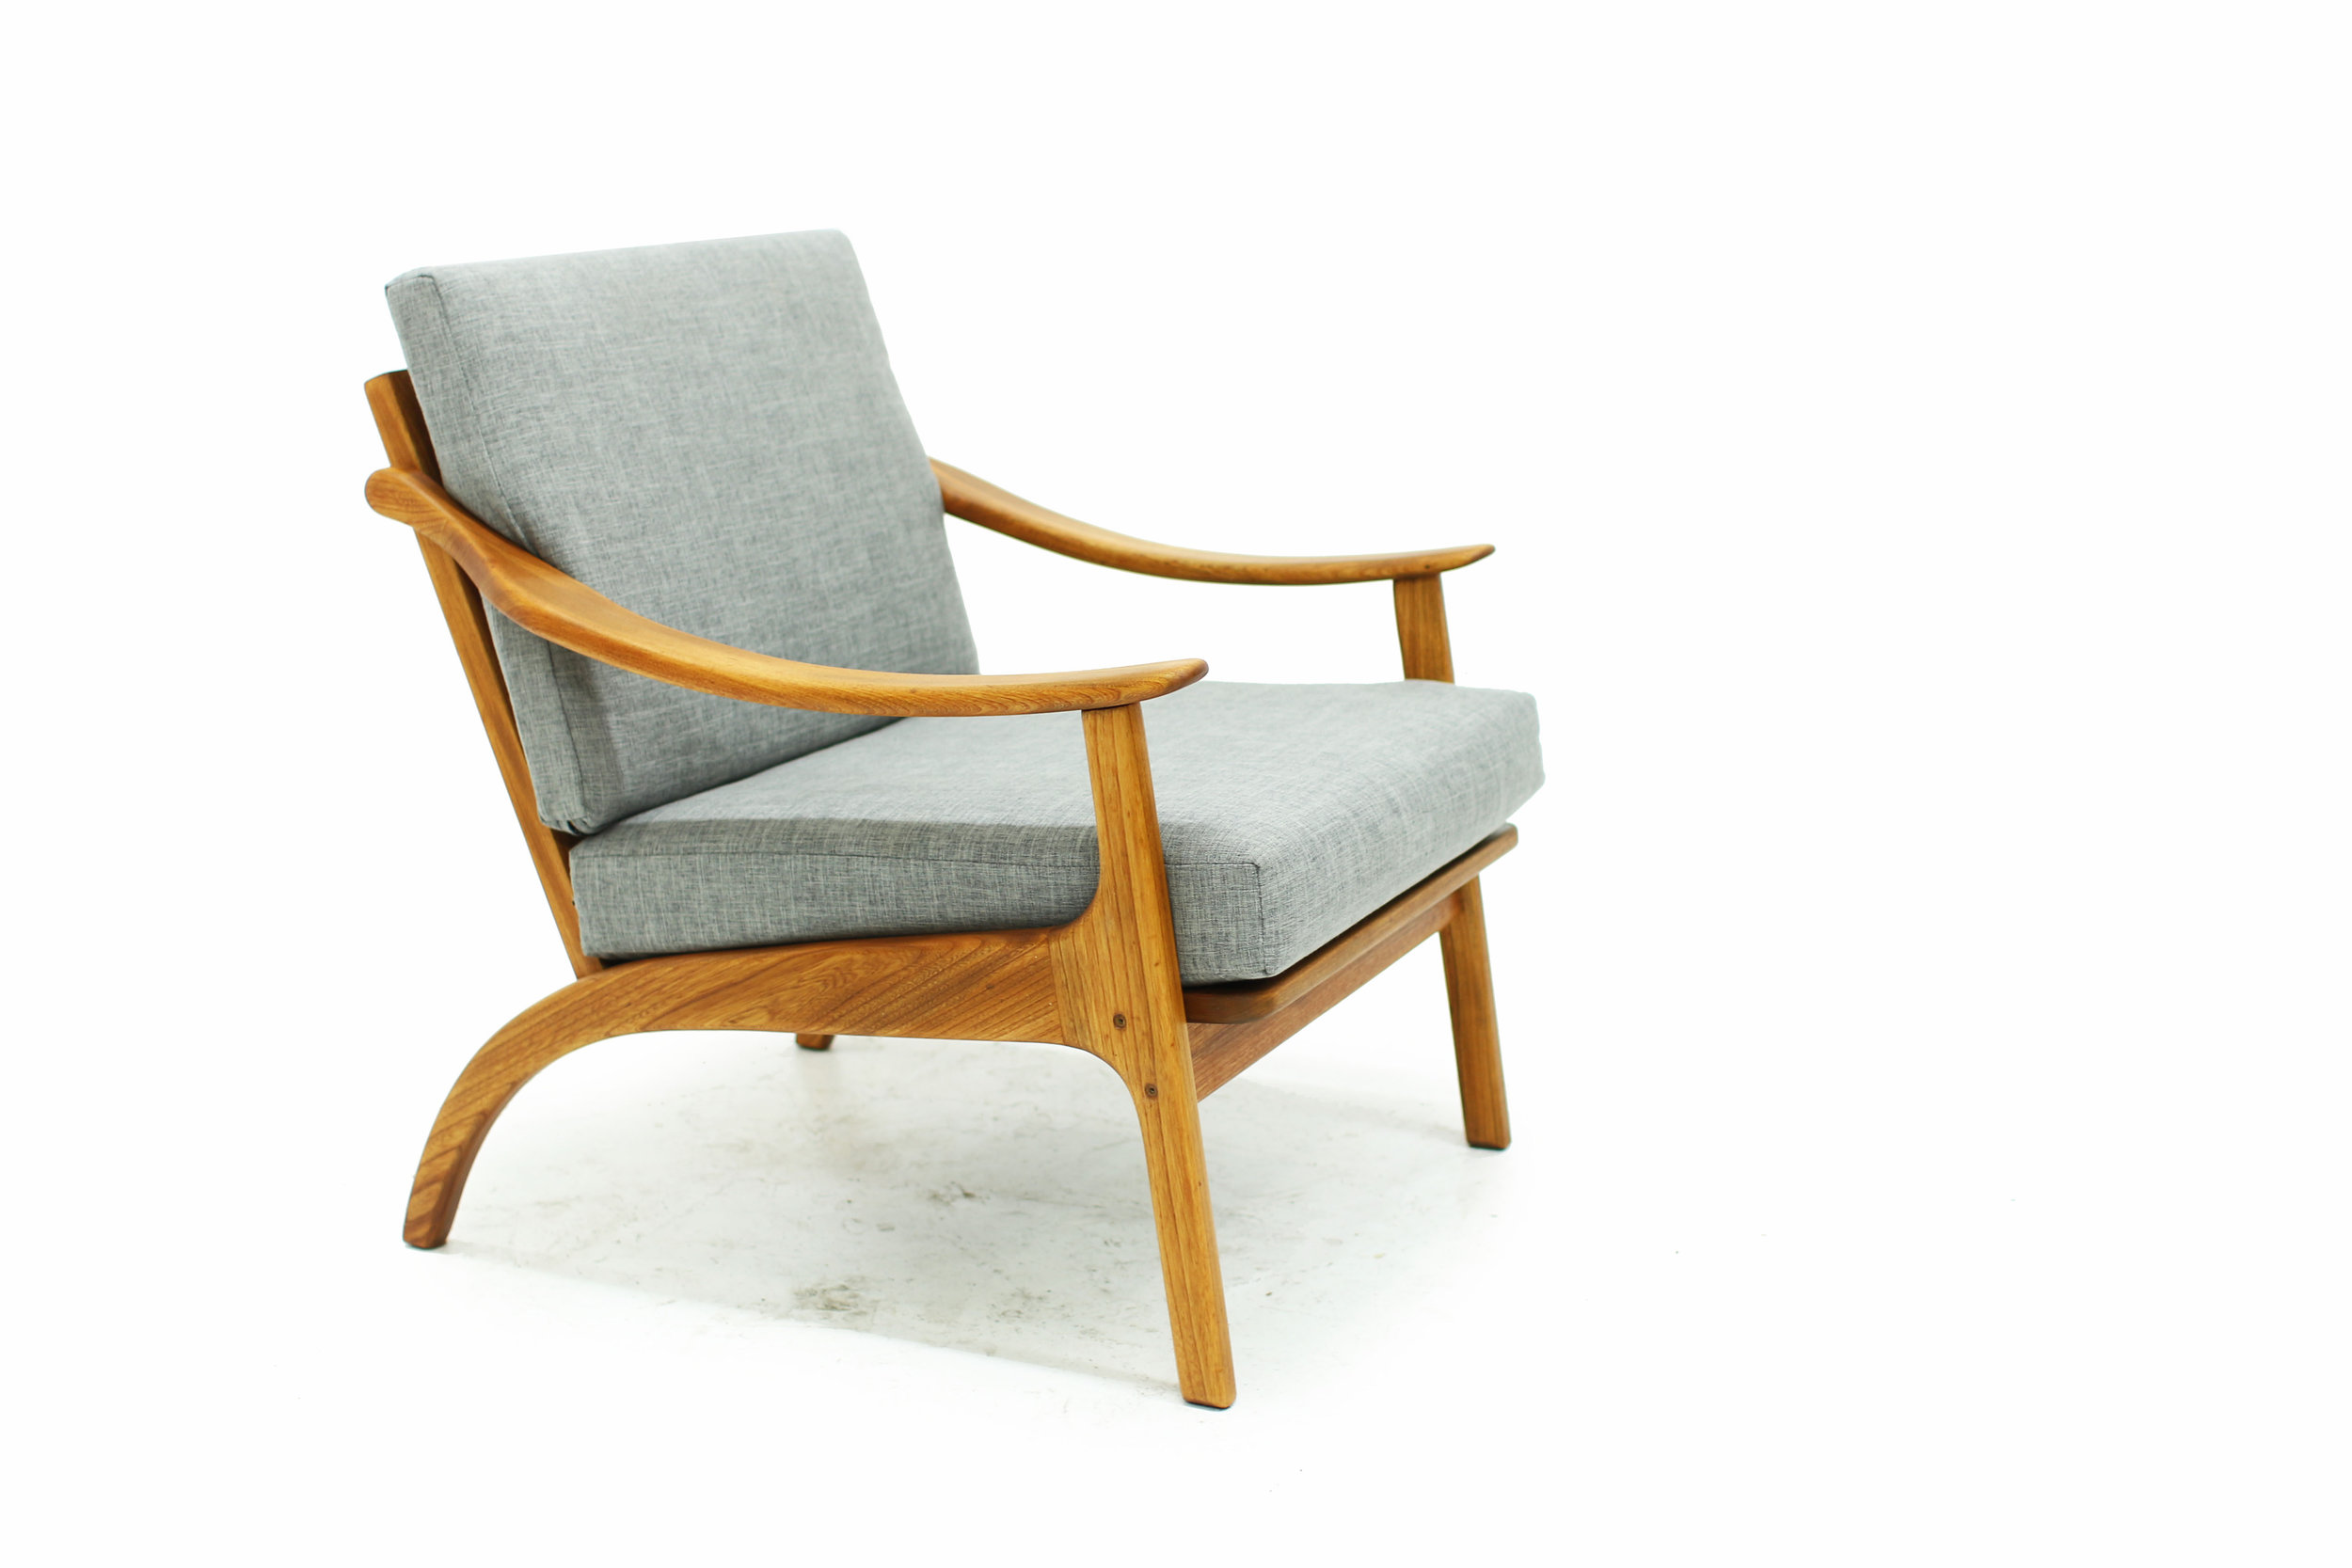 MCM Lounge Chair with New Grey Upholstery (1).jpg